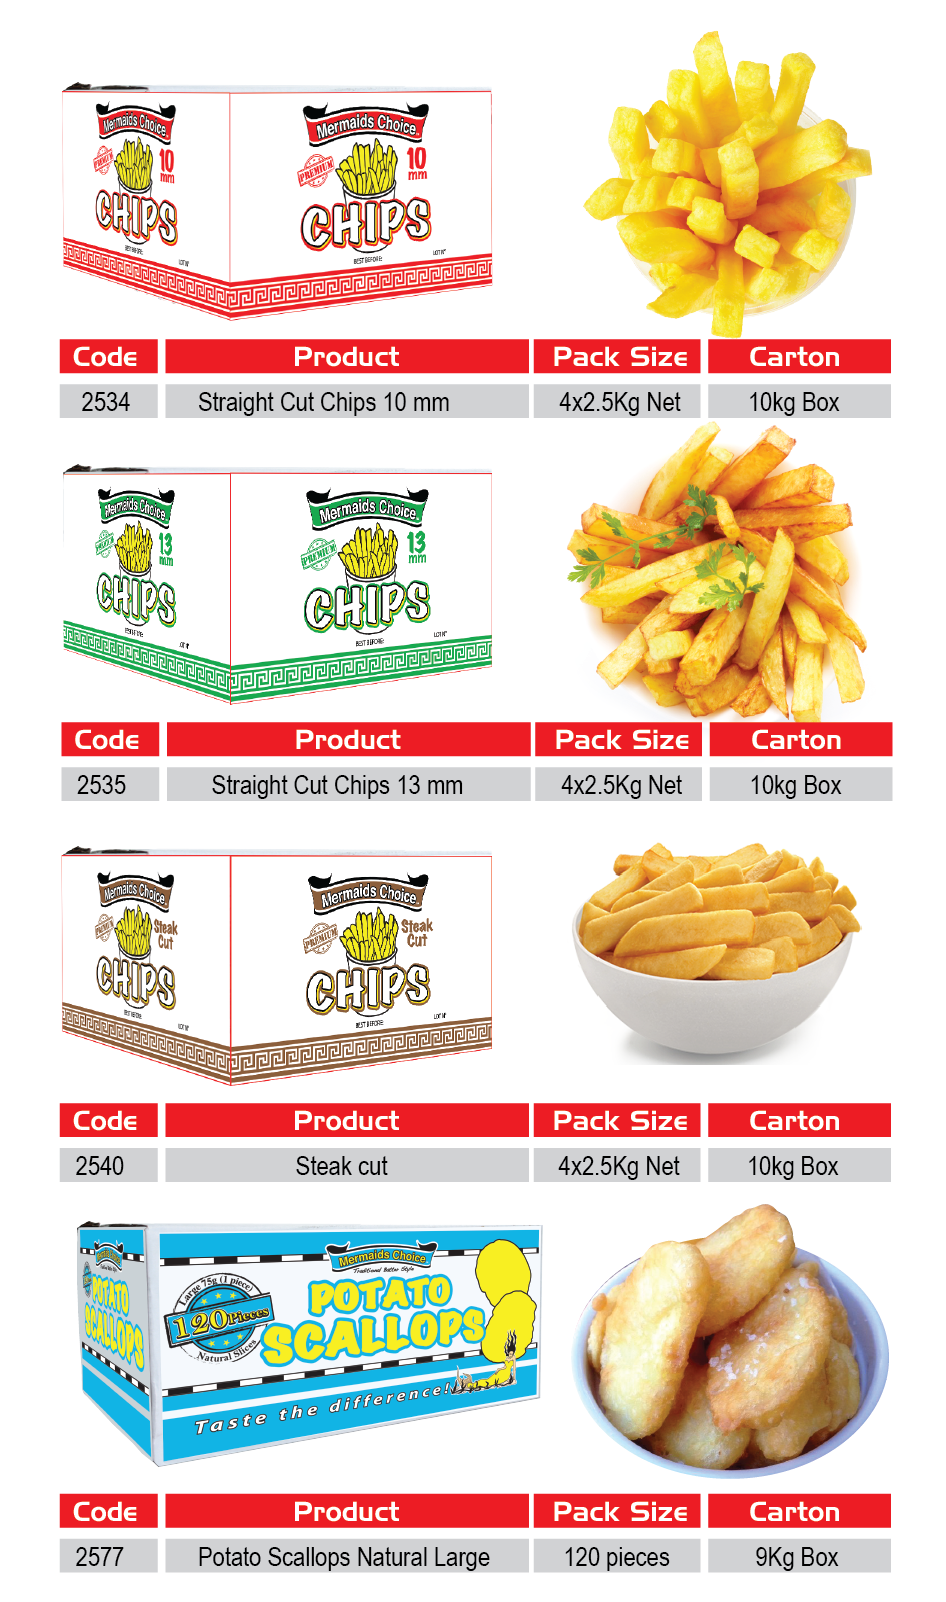 CHIPS_CHIPS.png